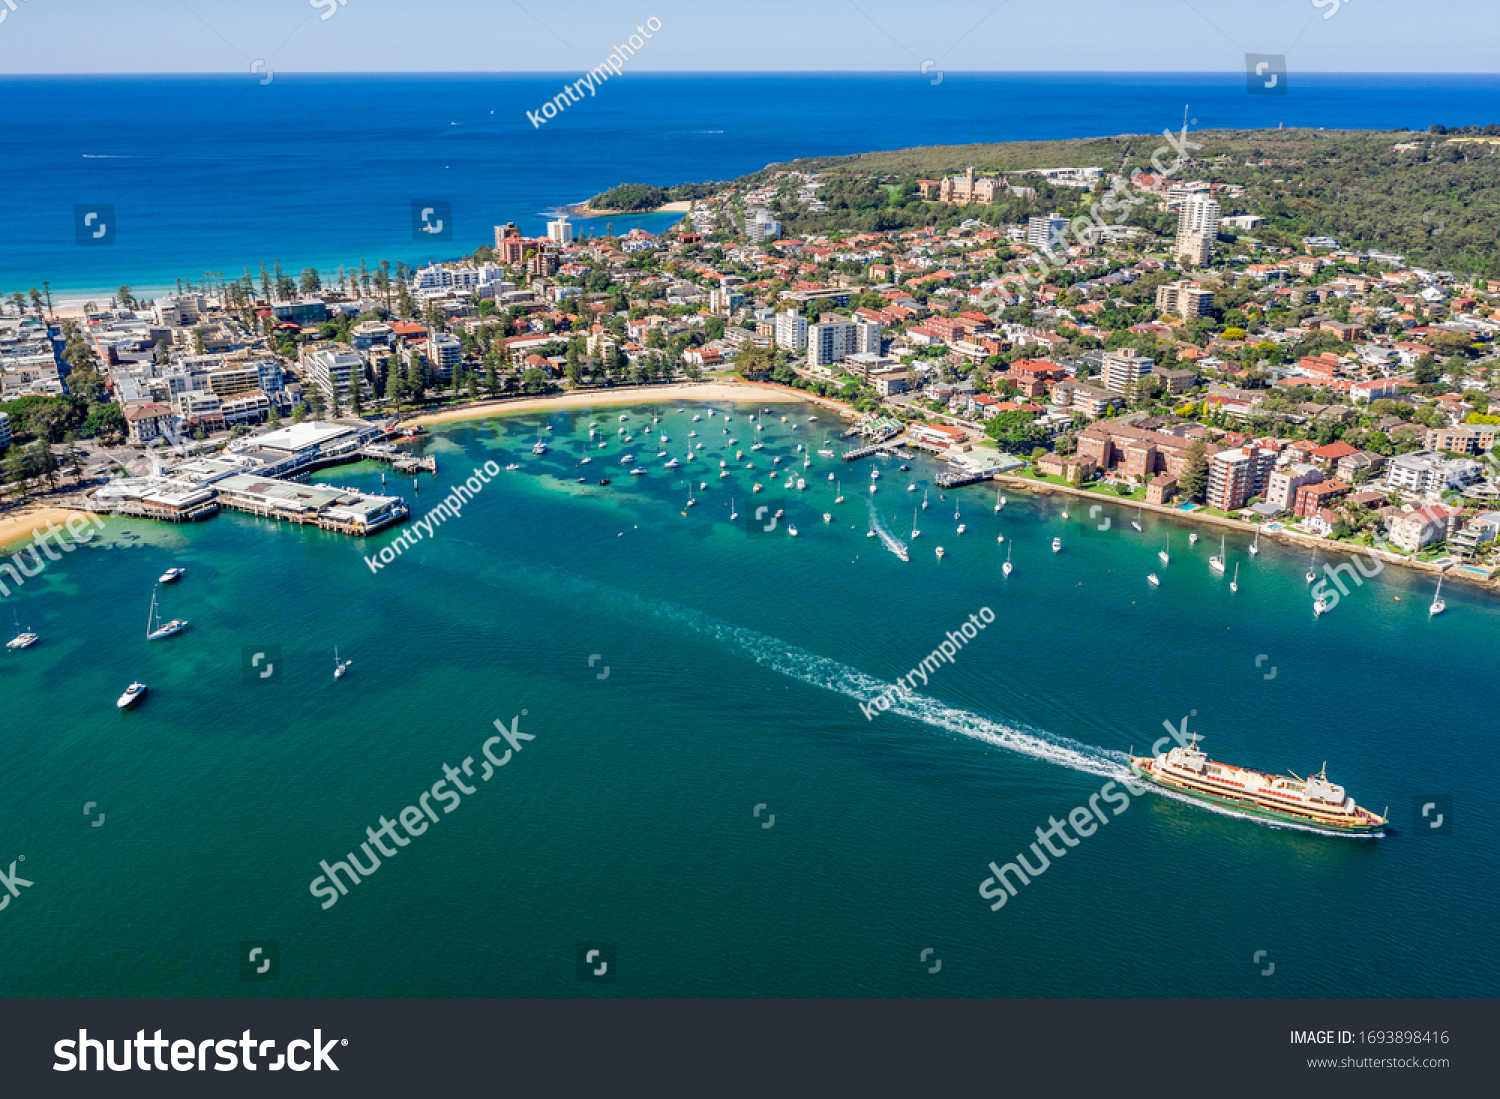 Aerial view on famous Manly Wharf and Manly, Sydney, Australia. View on Sydney harbourside suburb from above. Aerial view on Sydney North Harbour, Manly and Manly Wharf. #1693898416